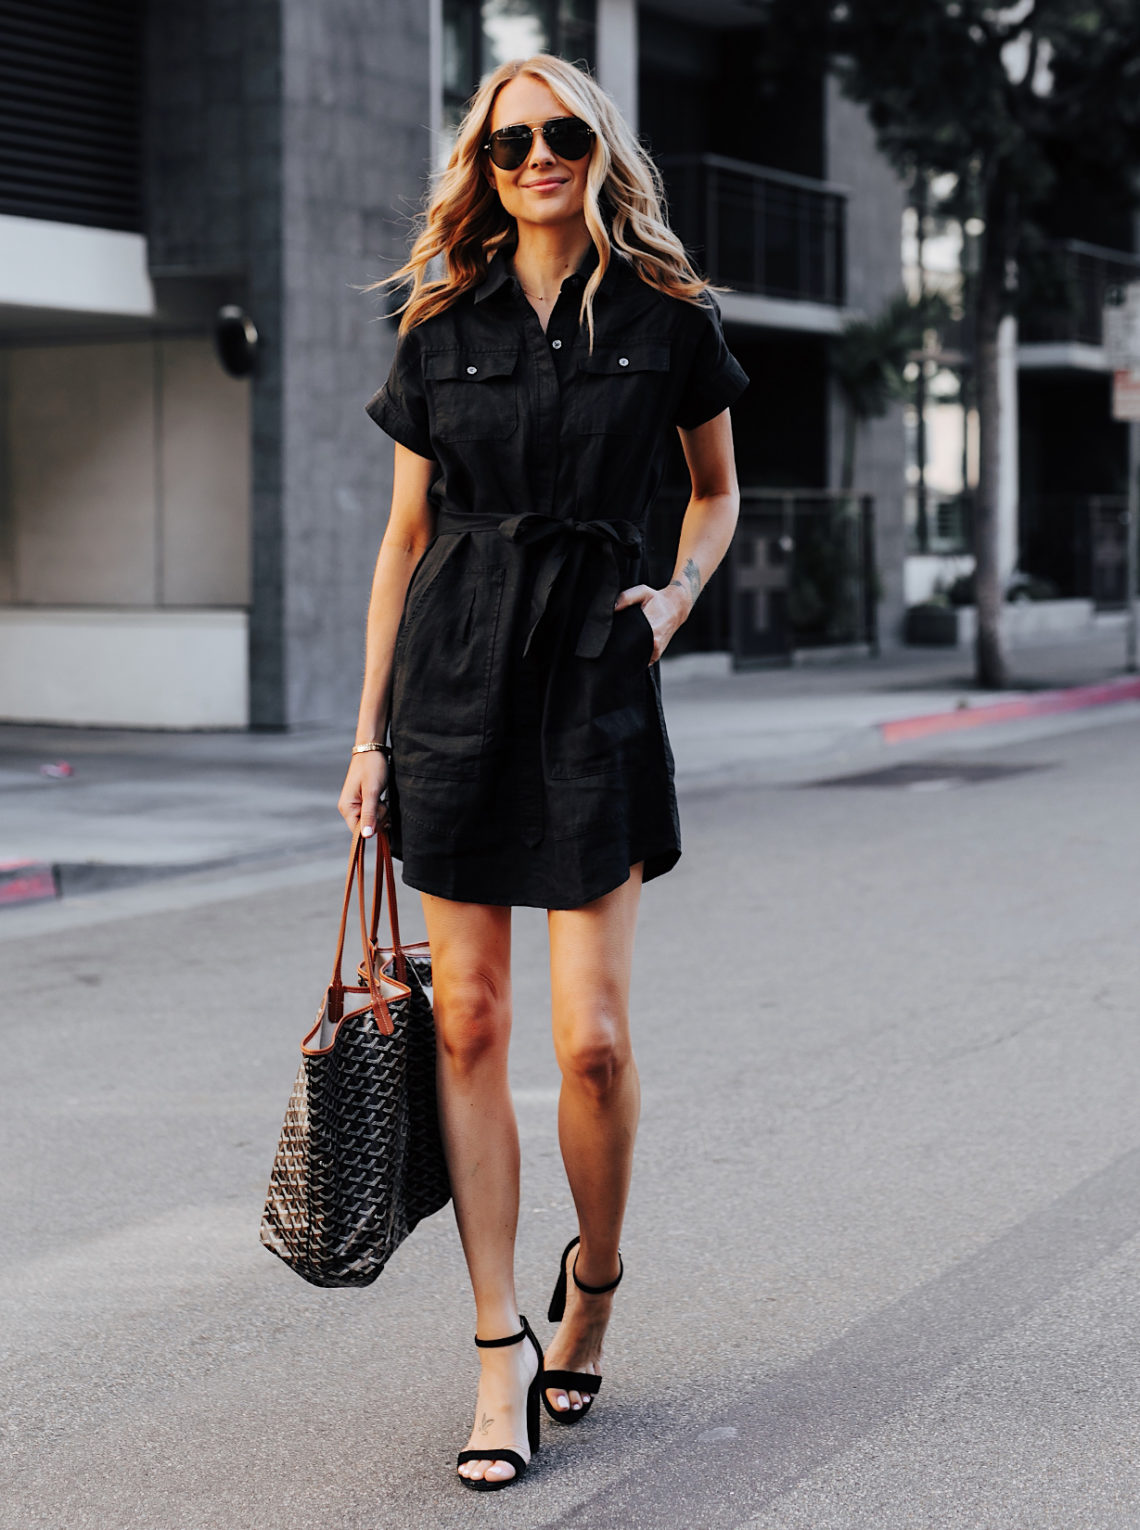 Fashion Jackson Wearing Black Short Sleeve Shirt Dress Featured Image